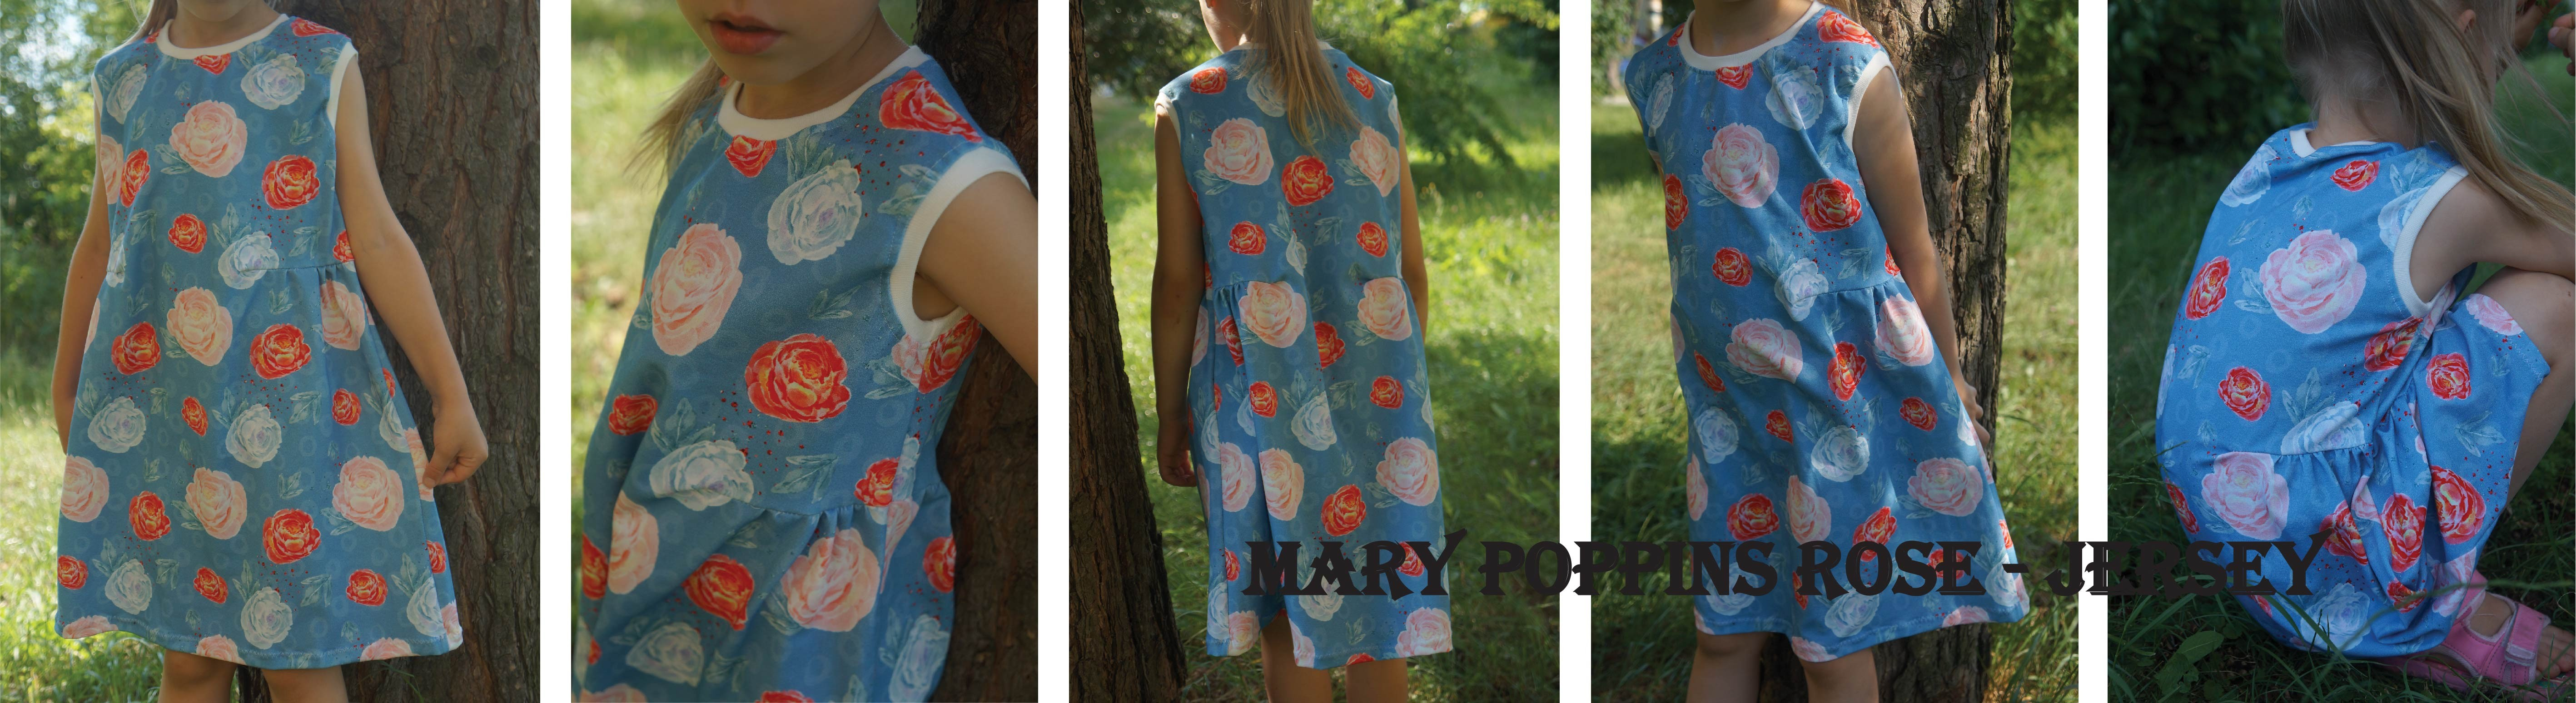 Mary Poppins Rose - jersey